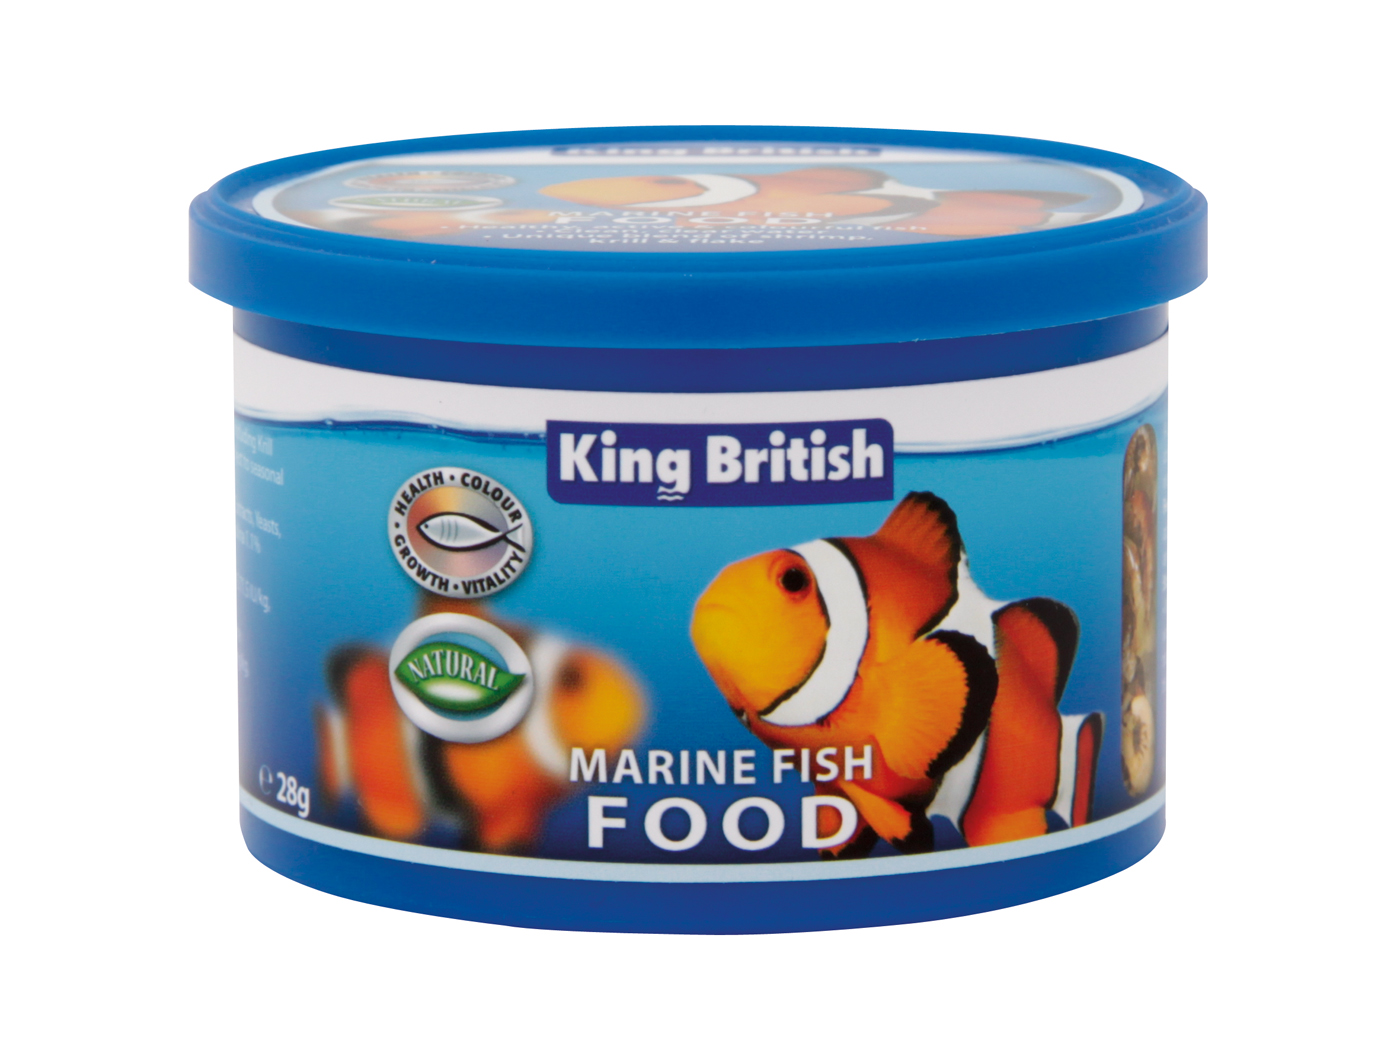 King British Marine Fish Food